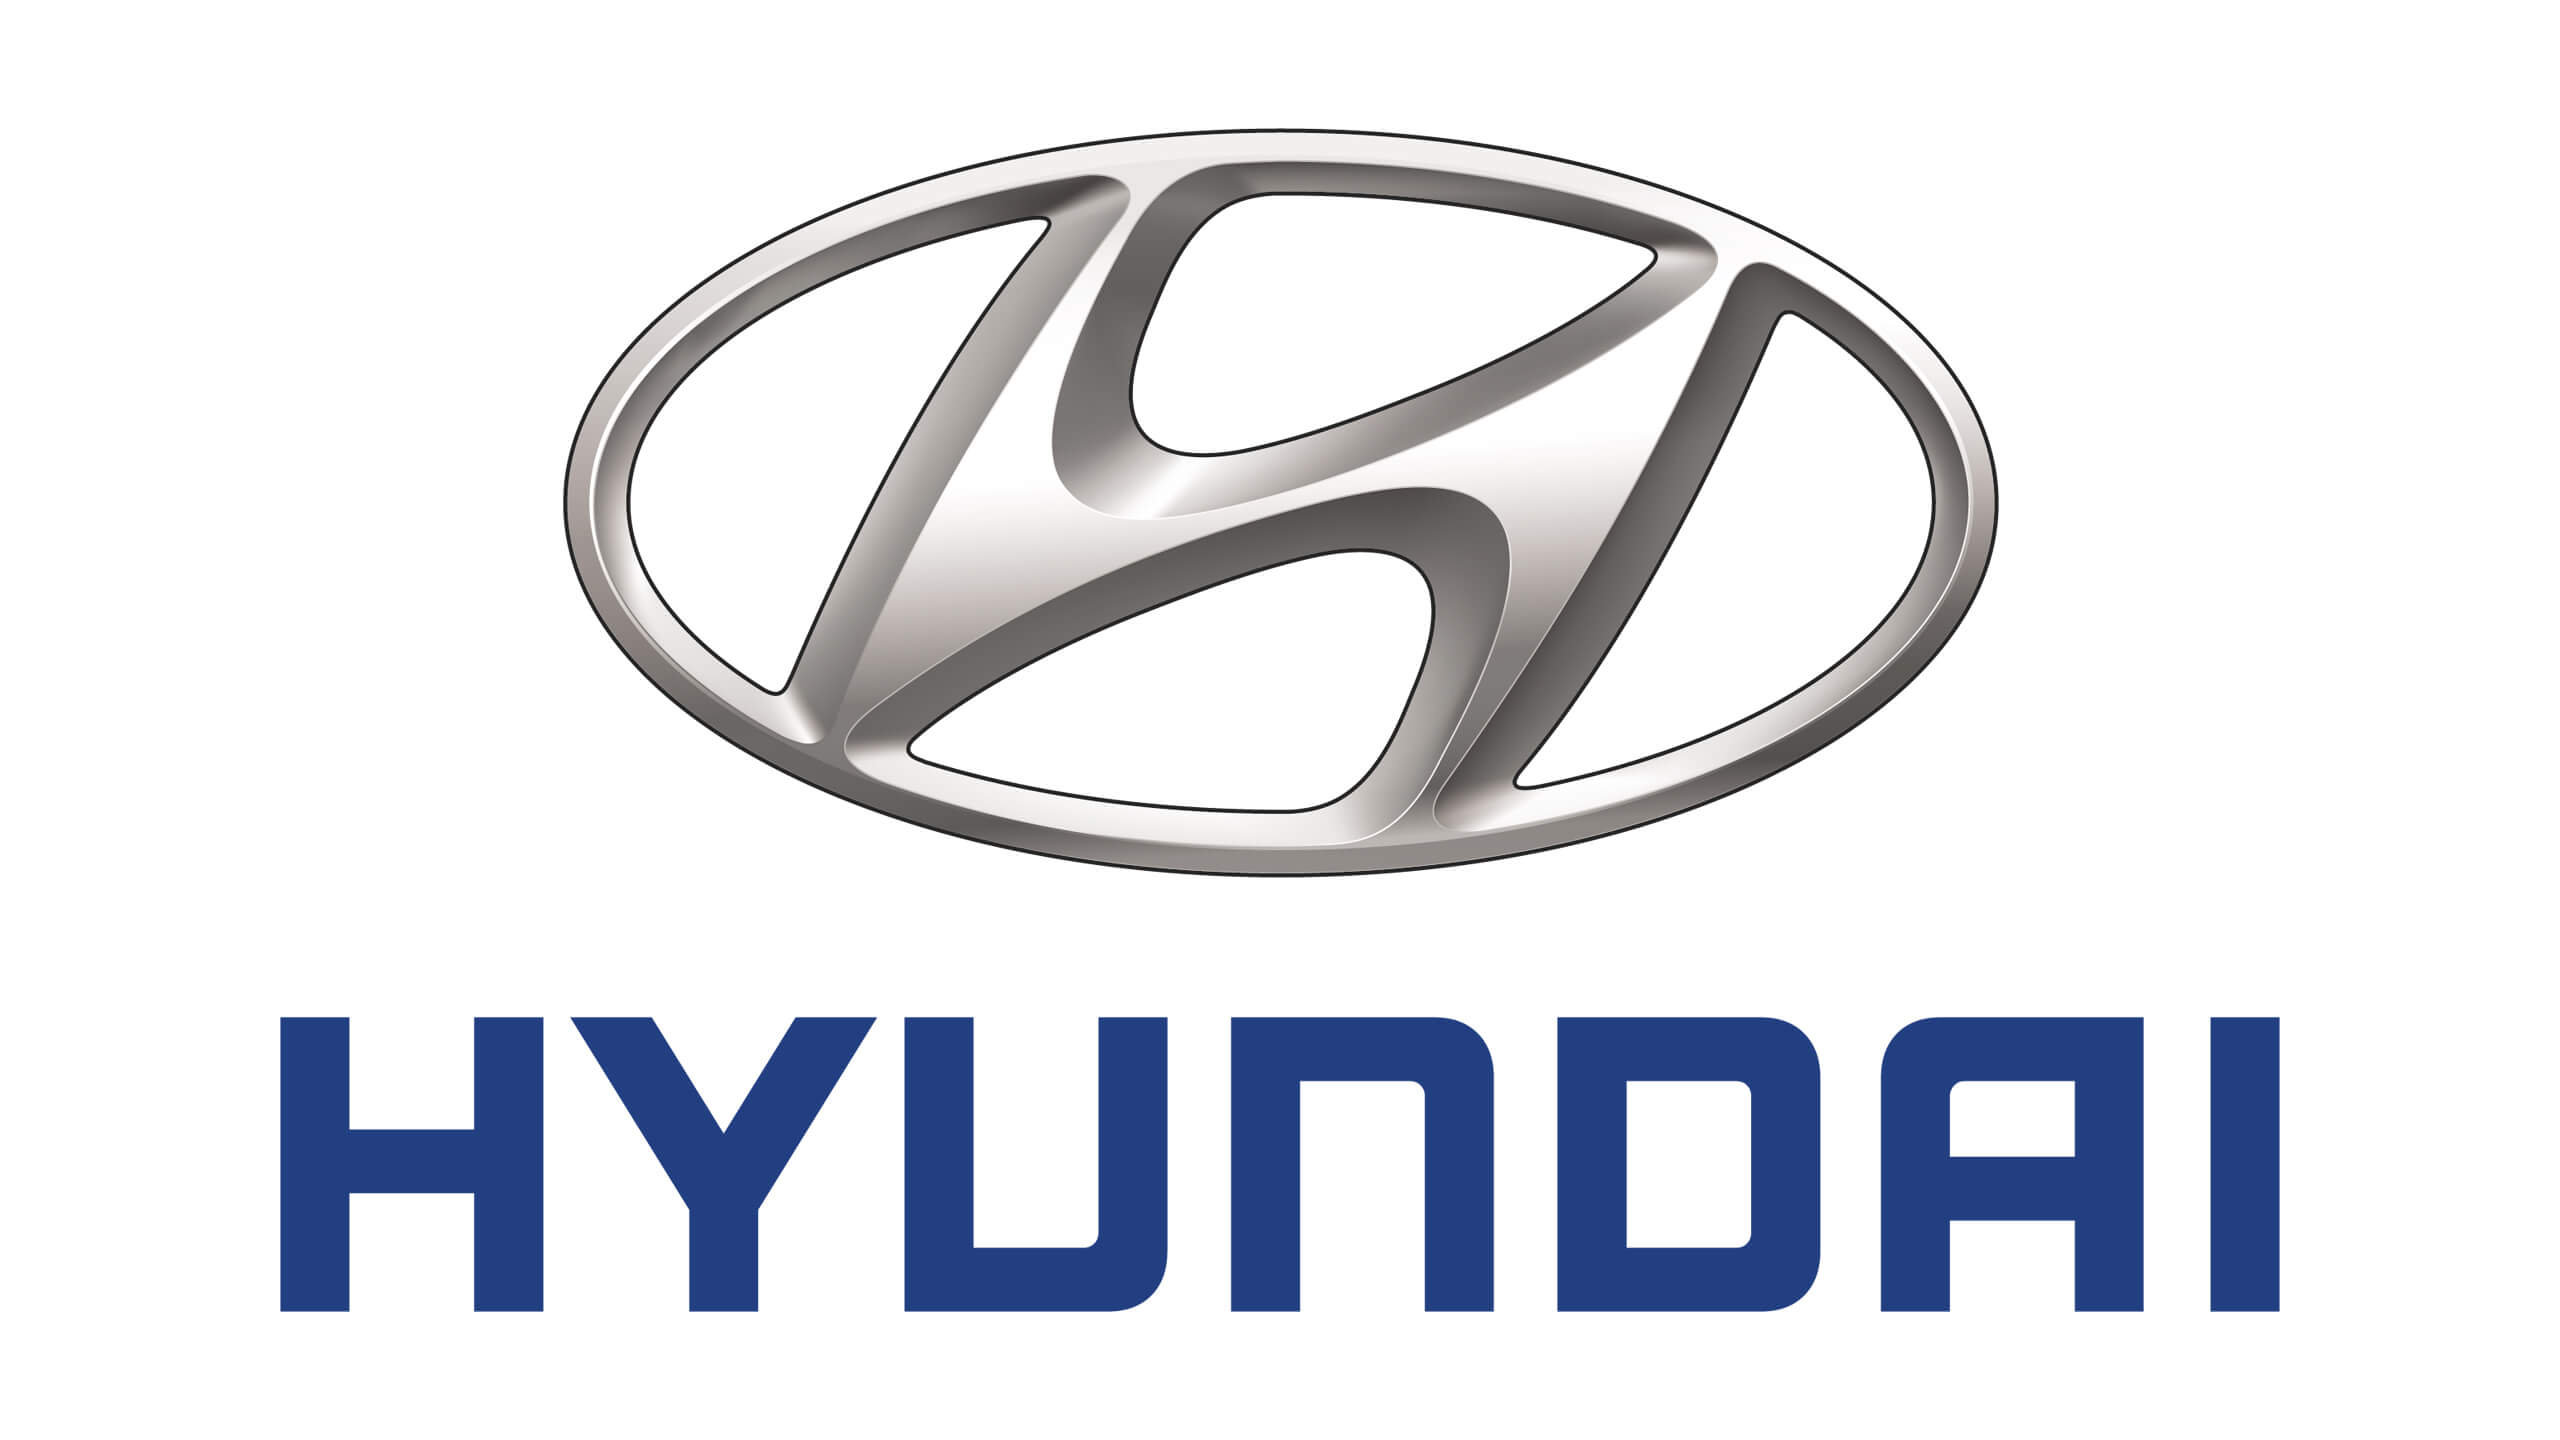 Hyundai's festive delight offers